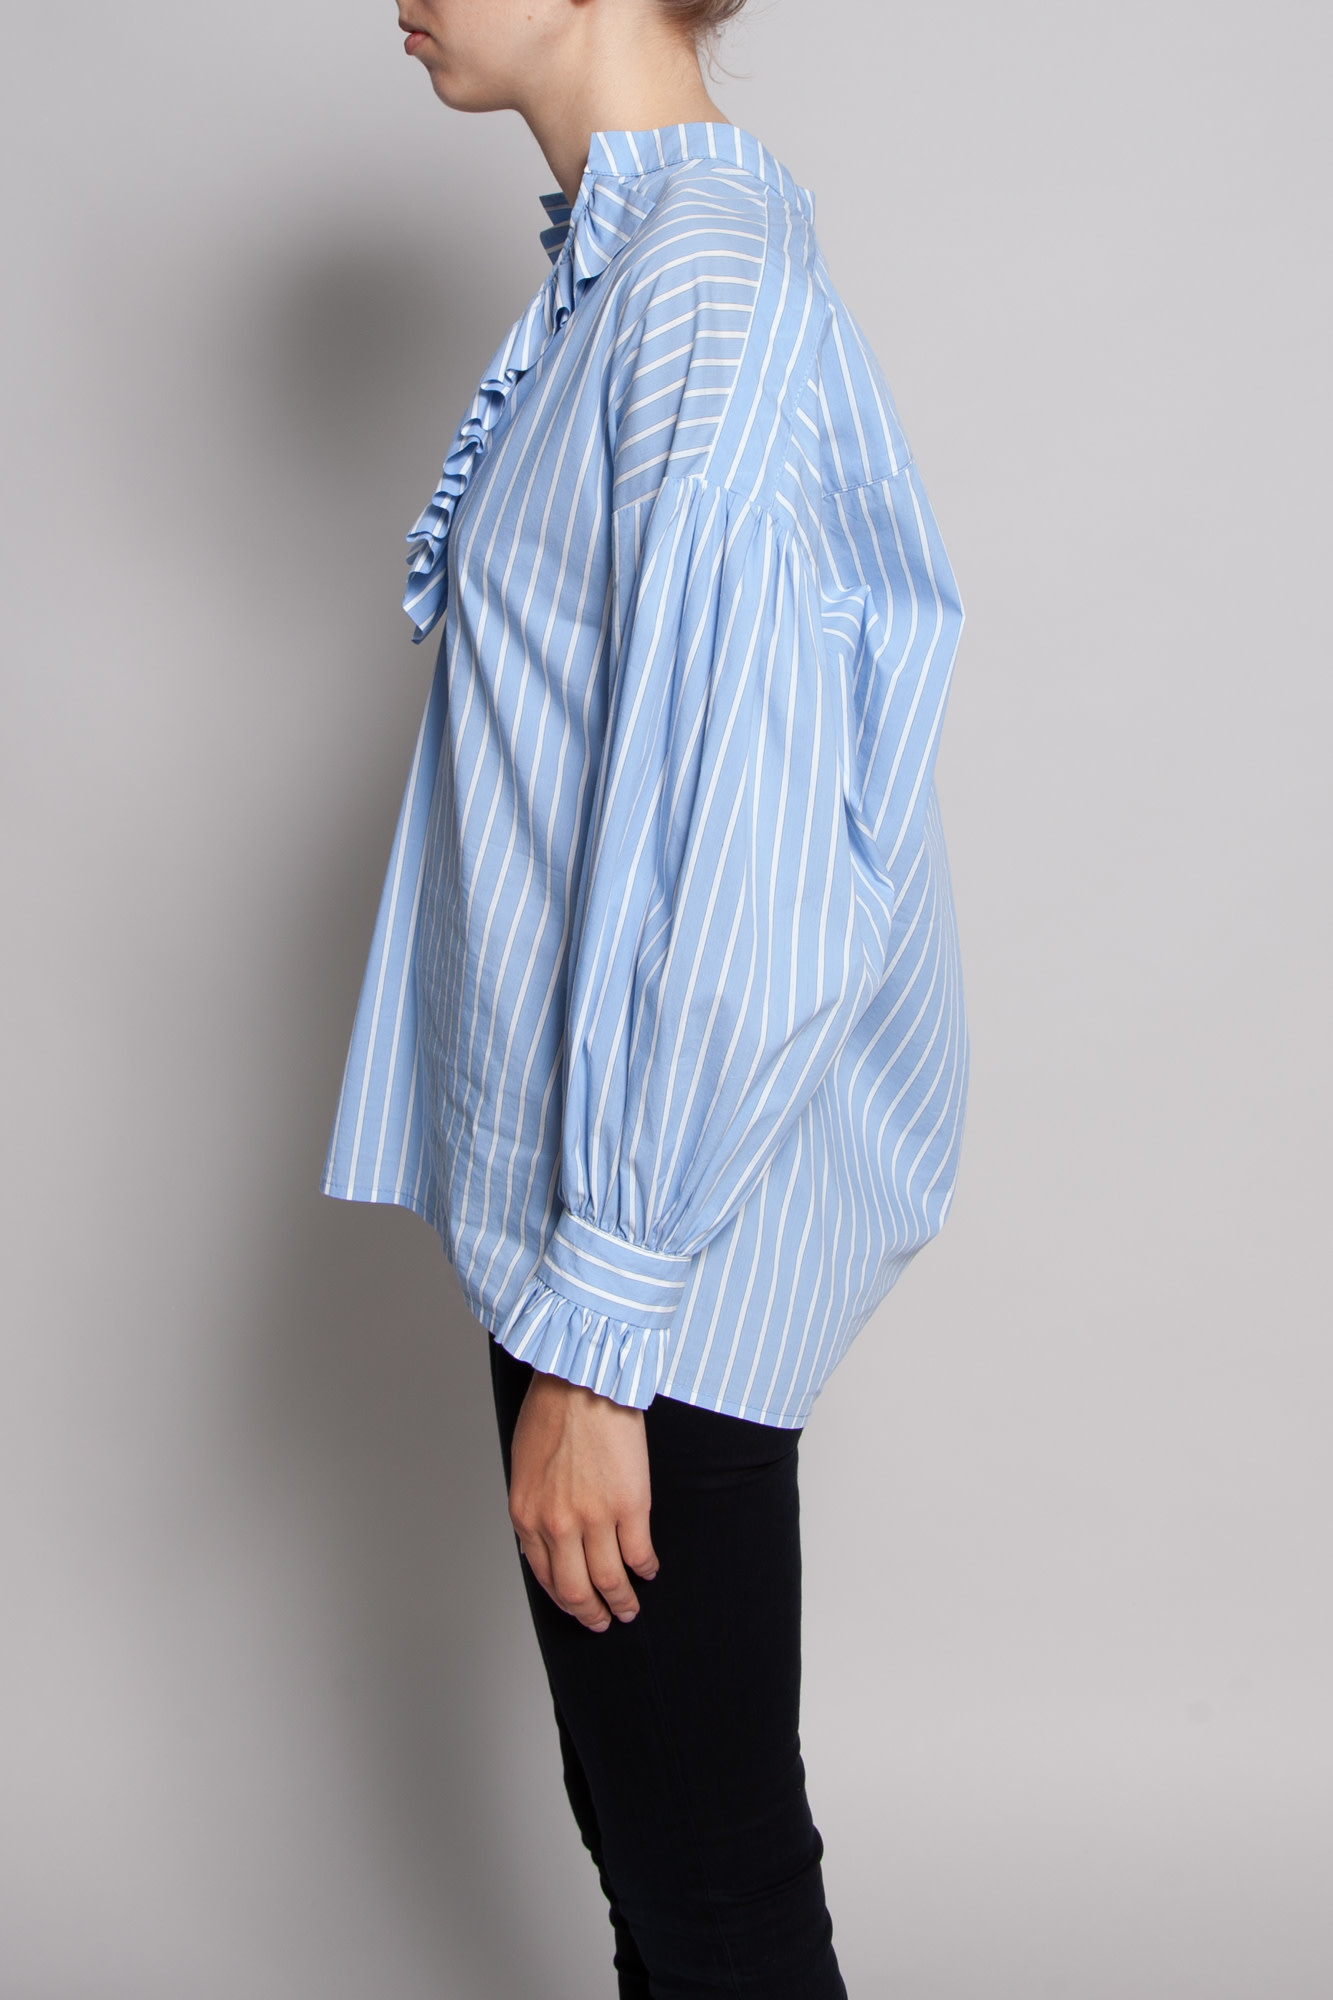 Tenax LIGHT BLUE SHIRT WITH WHITE STRIPES AND FRILLS